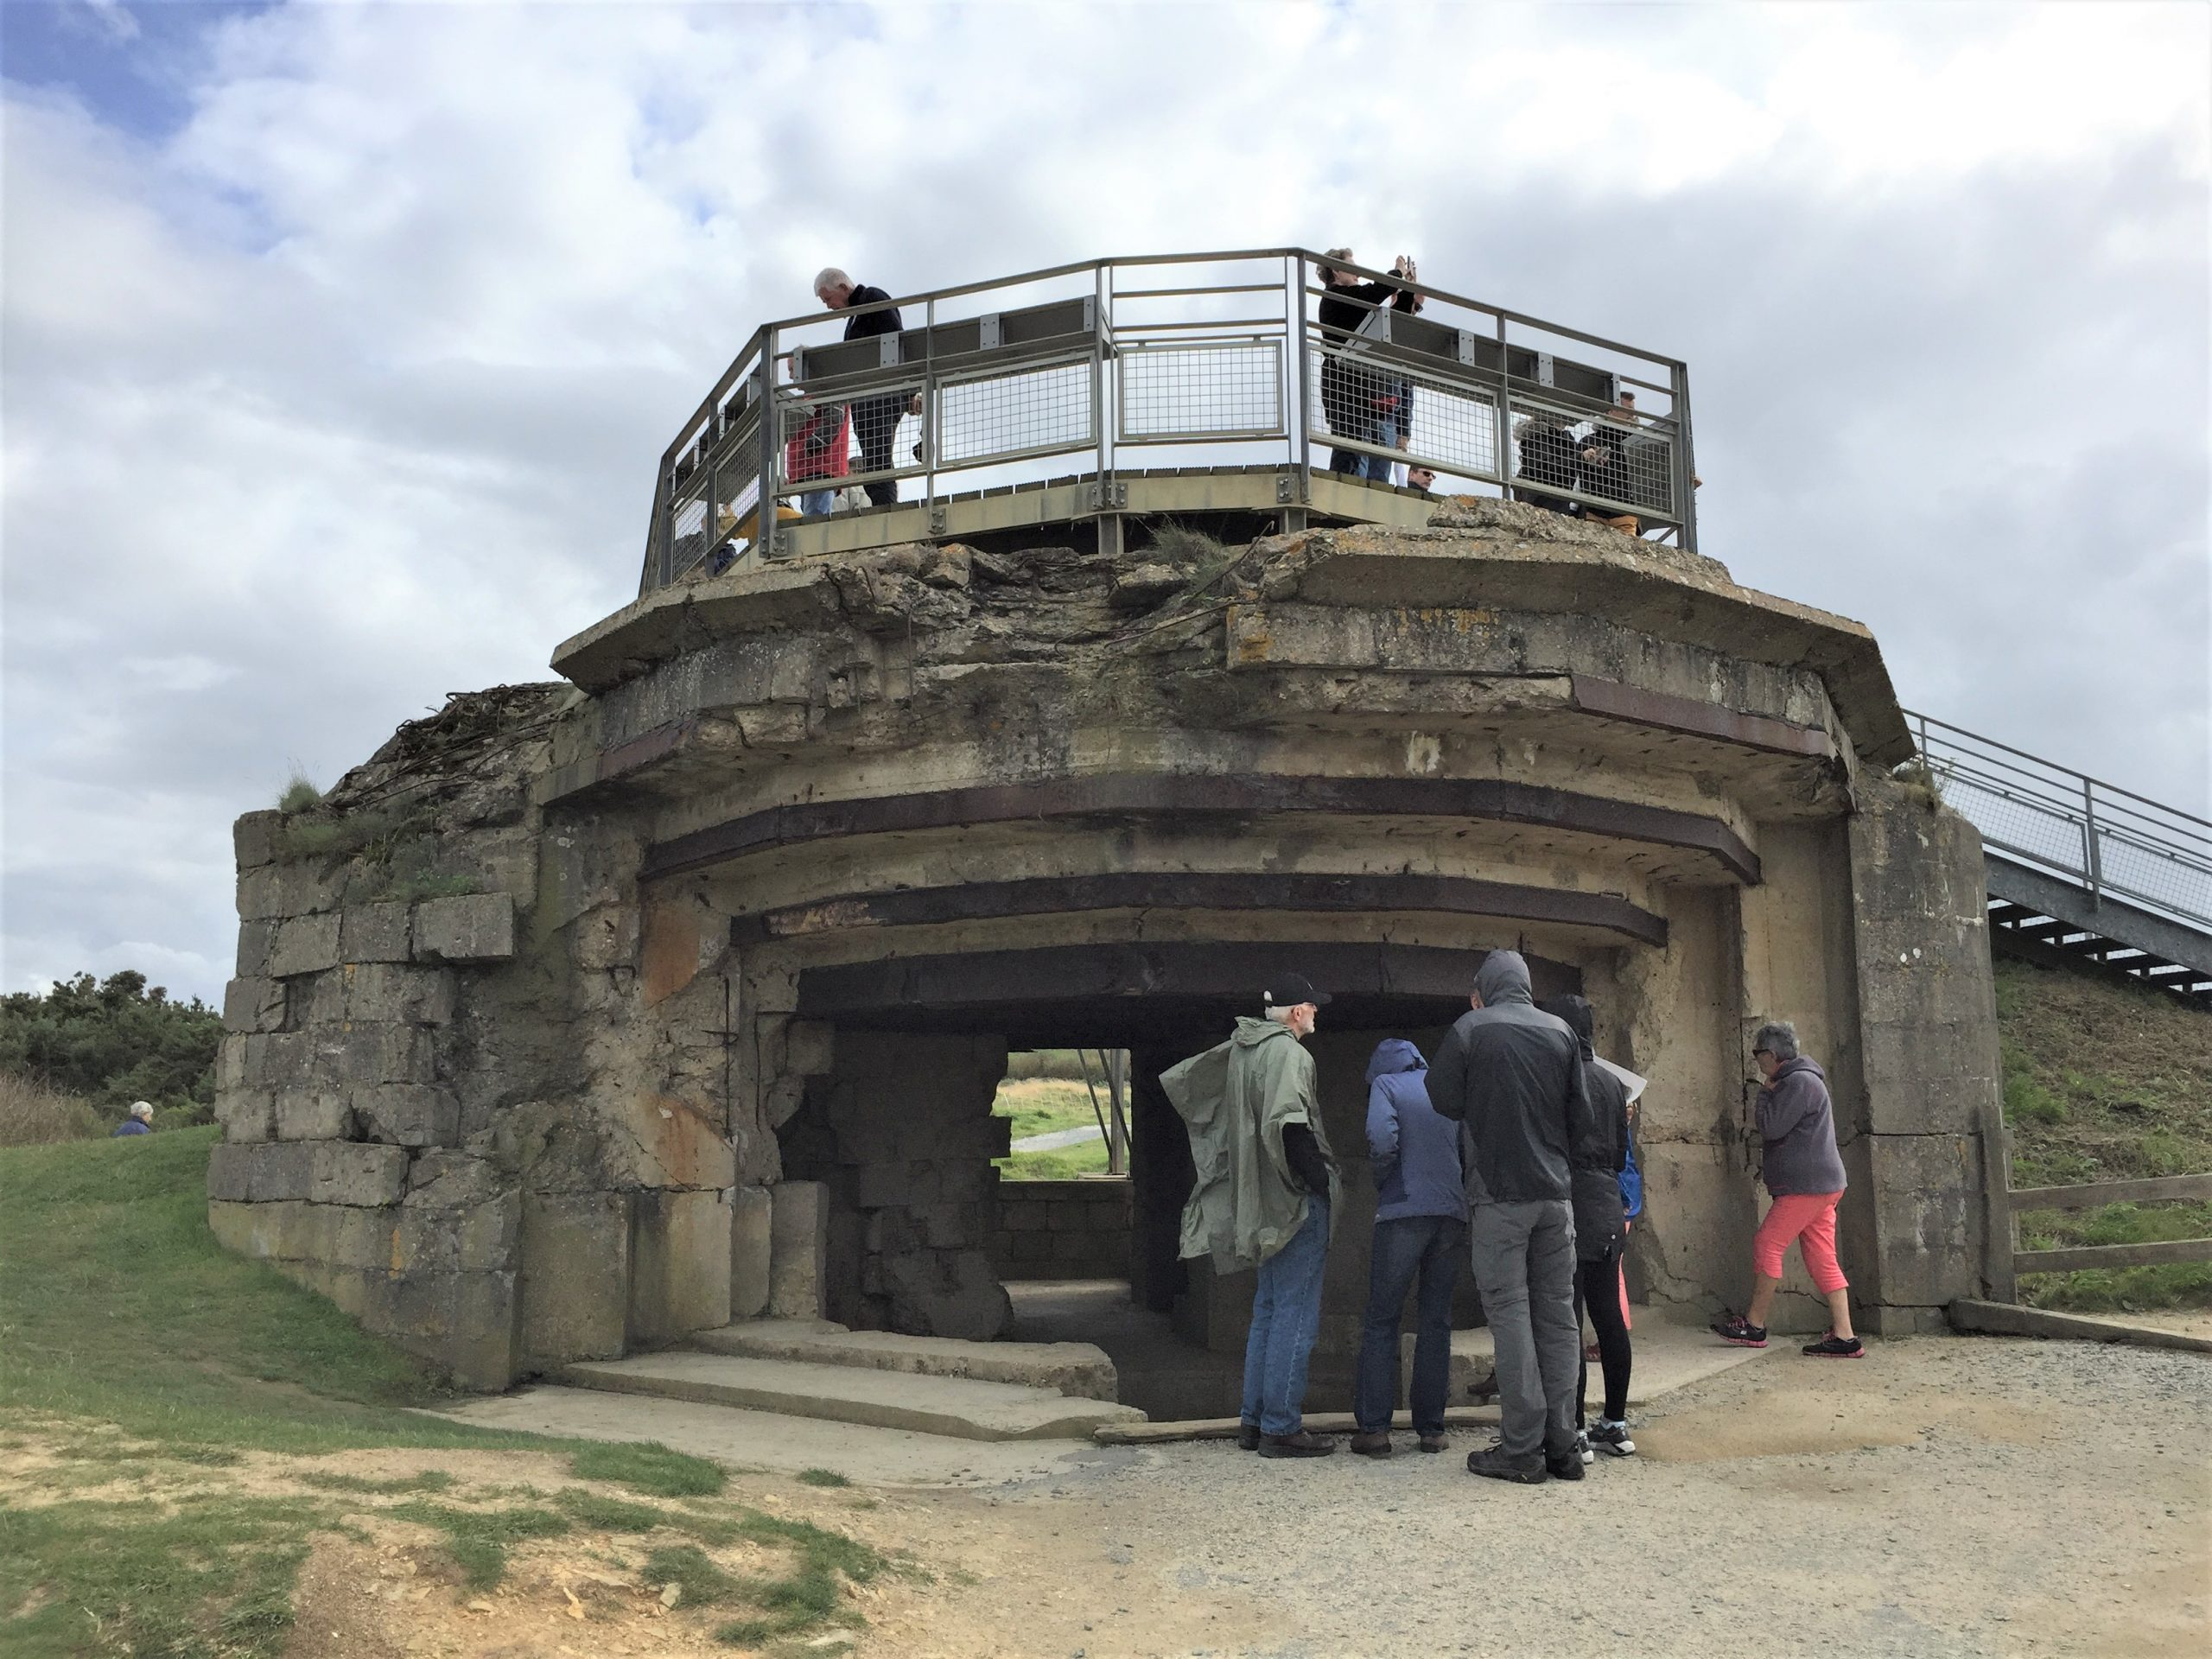 Gun casemate at Pointe du Hoc (Photo: Sarah Sundin, September 2017)